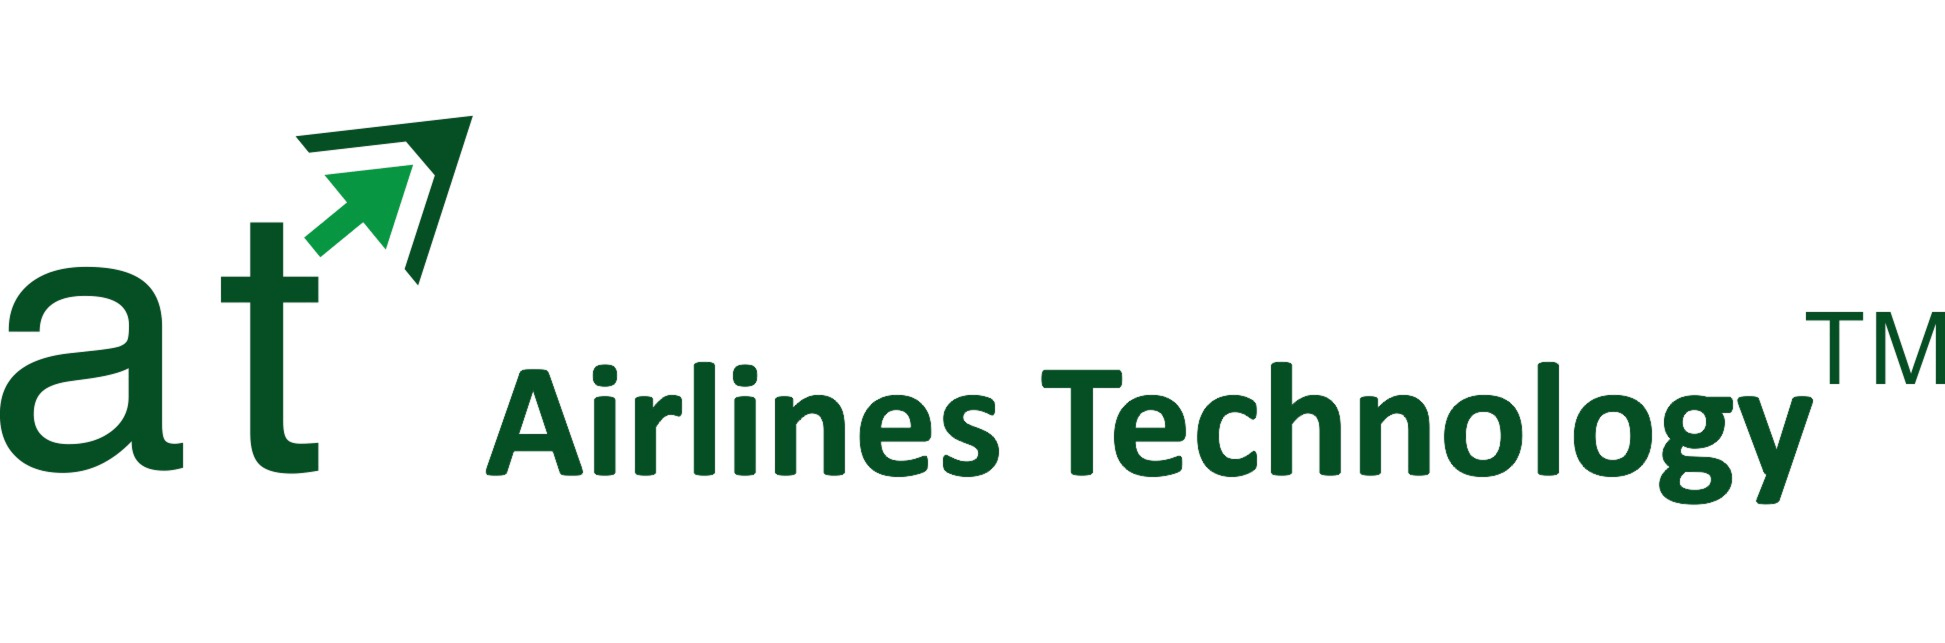 Airlines Technology